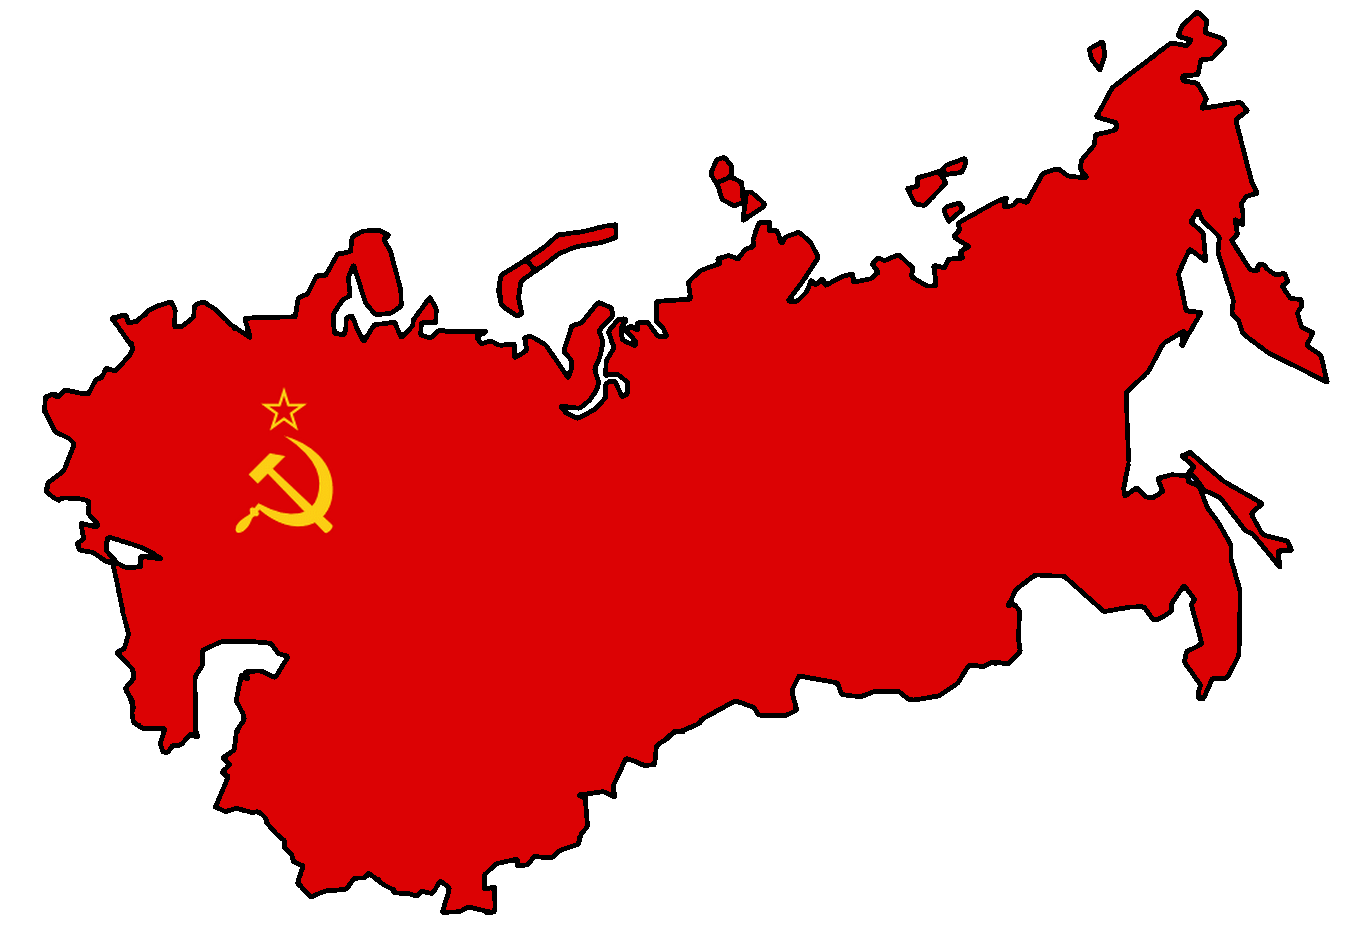 File:FlagMap of USSR.png.